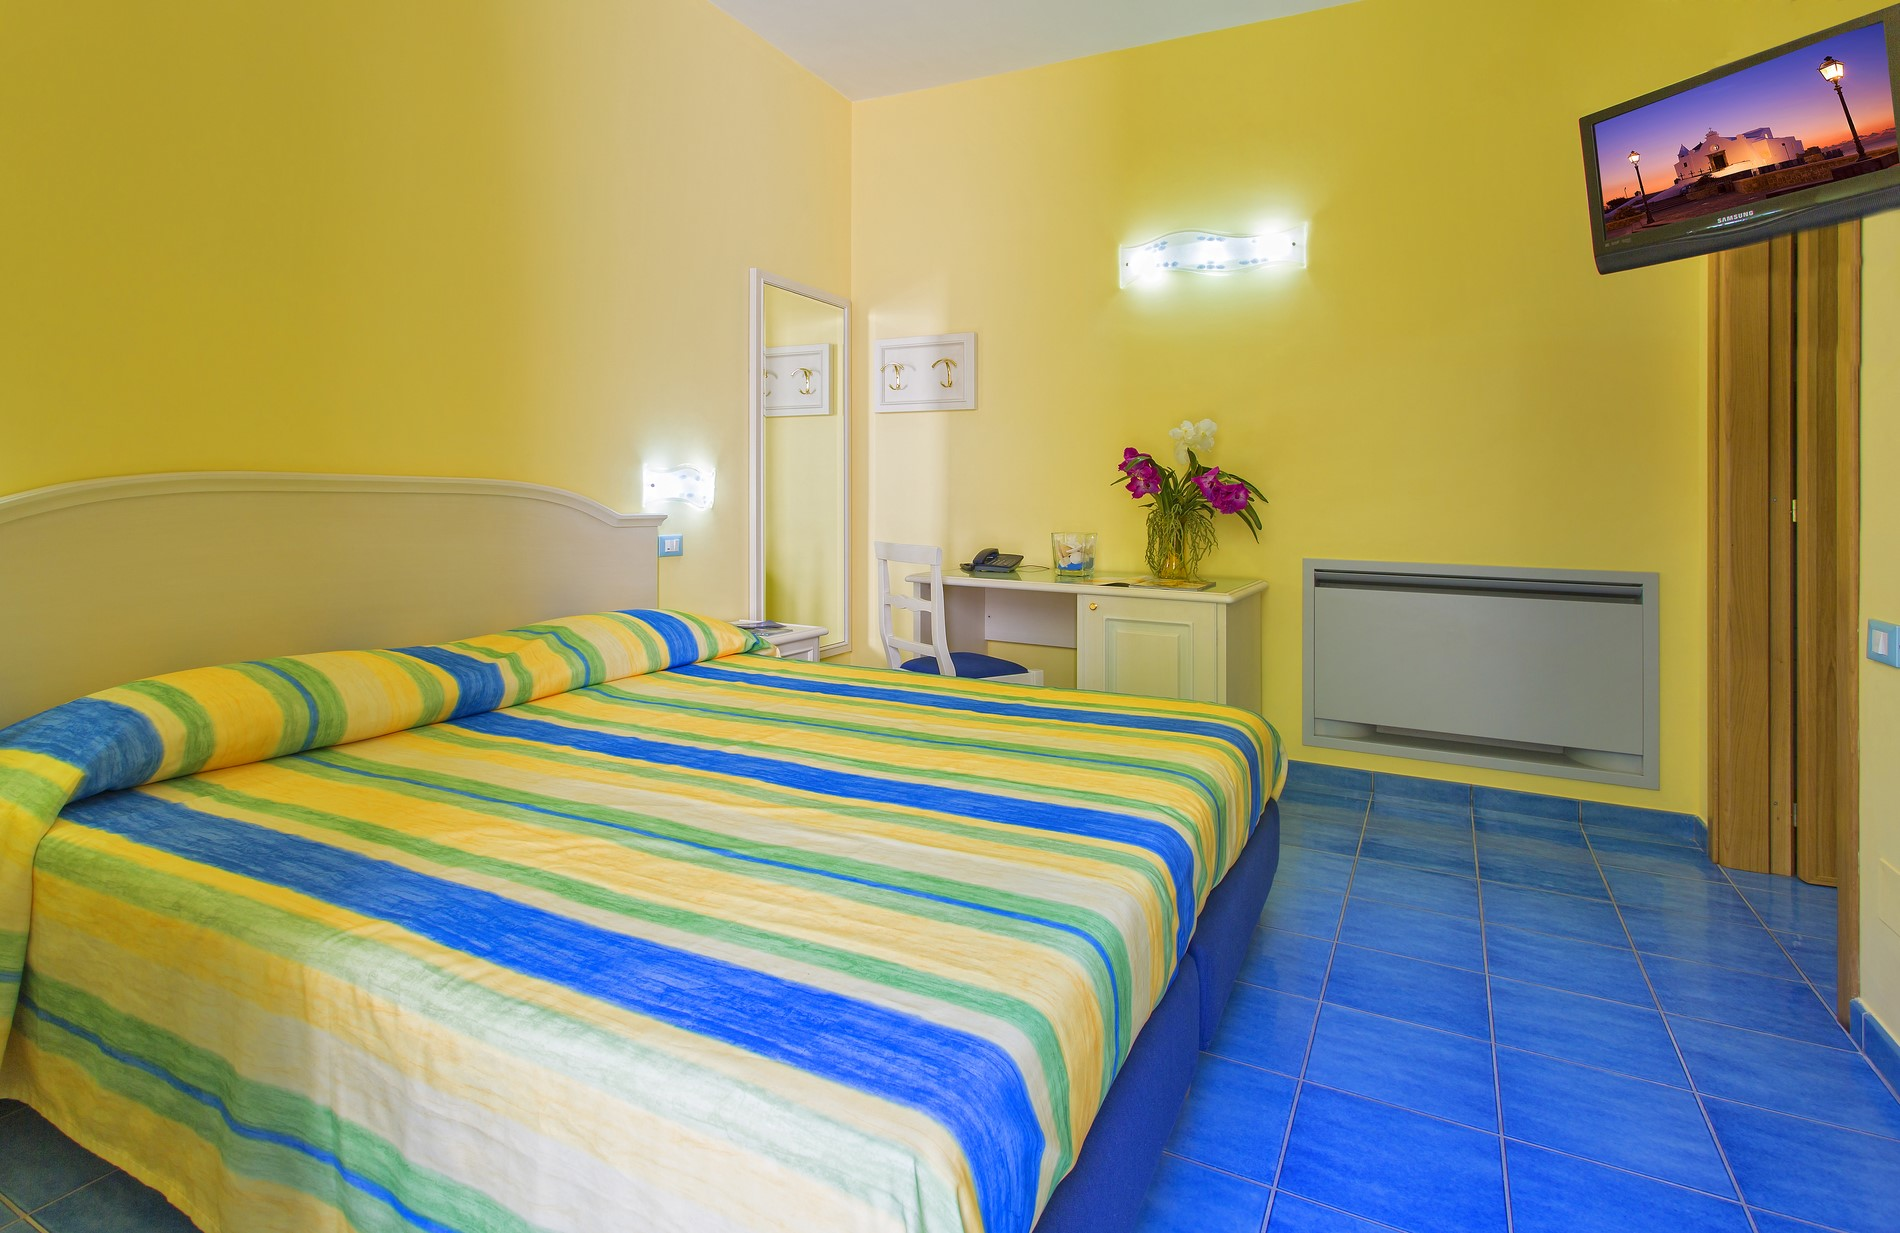 http://www.hotelcavadellisola.it/wp-content/uploads/2016/03/91A1245-Copia.jpg